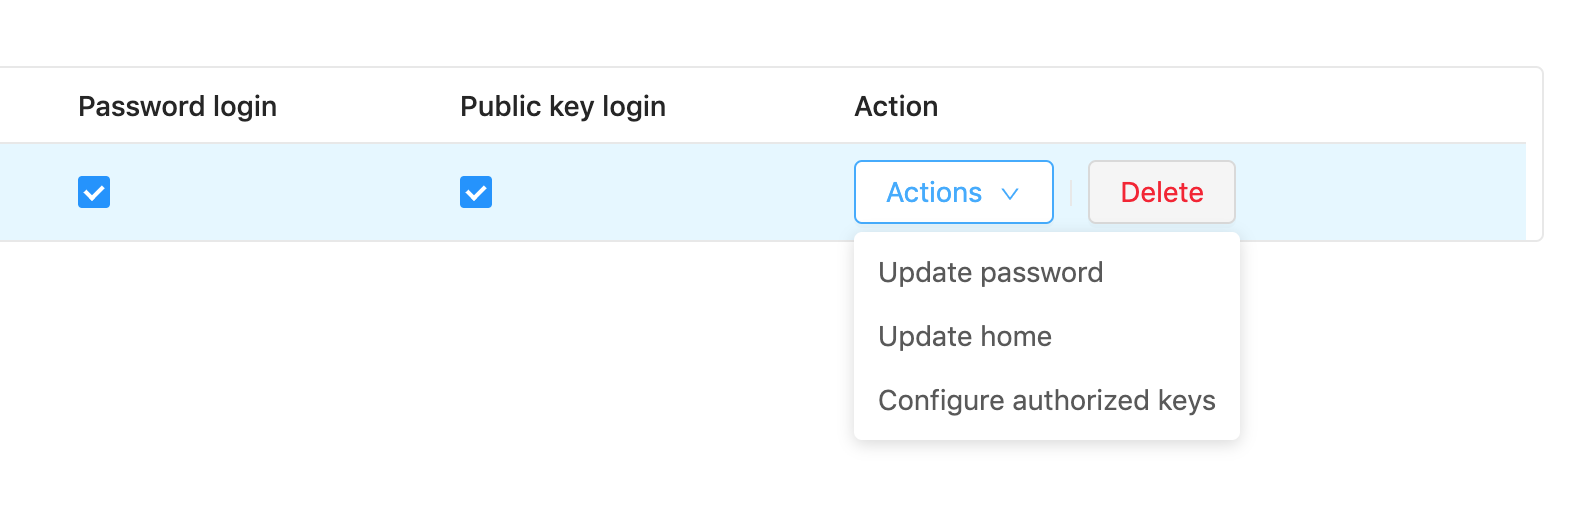 Adding SSH authorized keys to a user for SFTP - DocEvent io Help Center